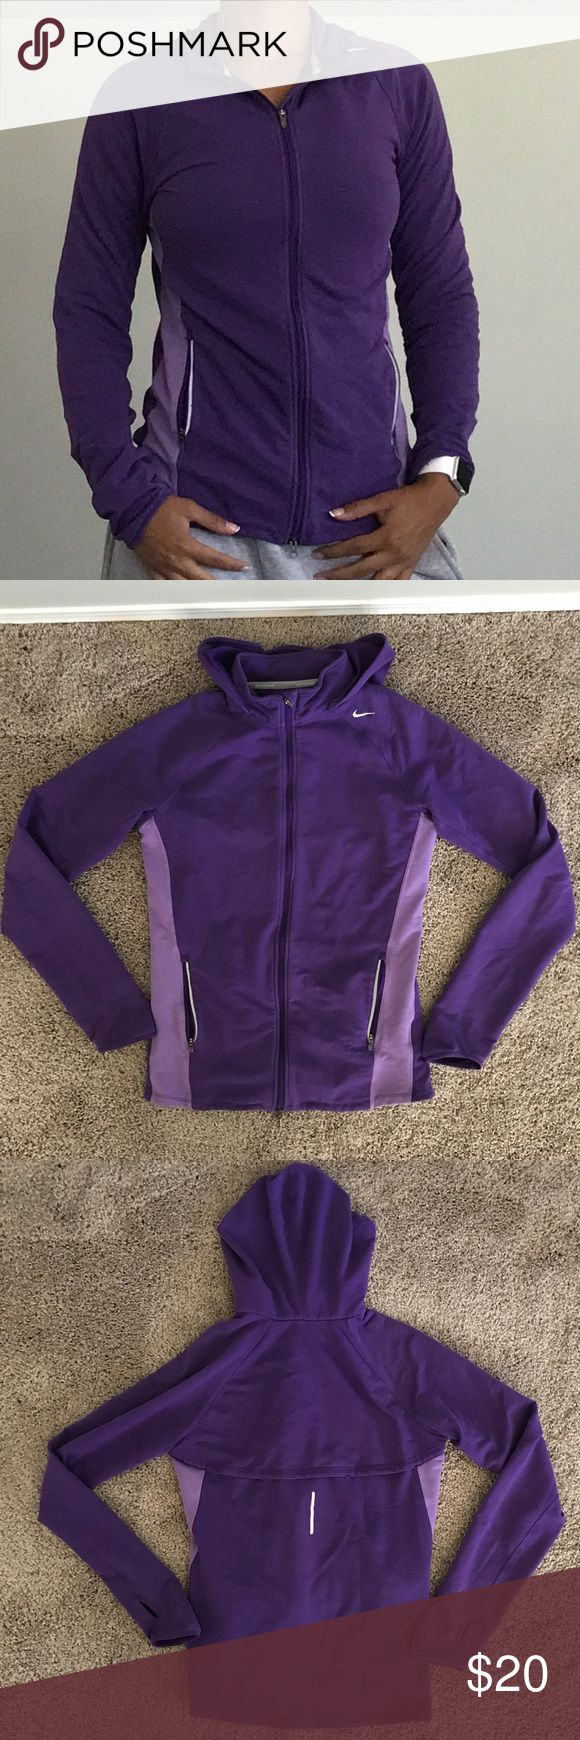 "Nike zip up hoodie Fashionable Nike purple zip up hoodie. This hoodie is simple yet stylish. Size medium with a measured pit to pit of about 17"". Hoodie is lightly used Nike Tops Sweatshirts & Hoodies"